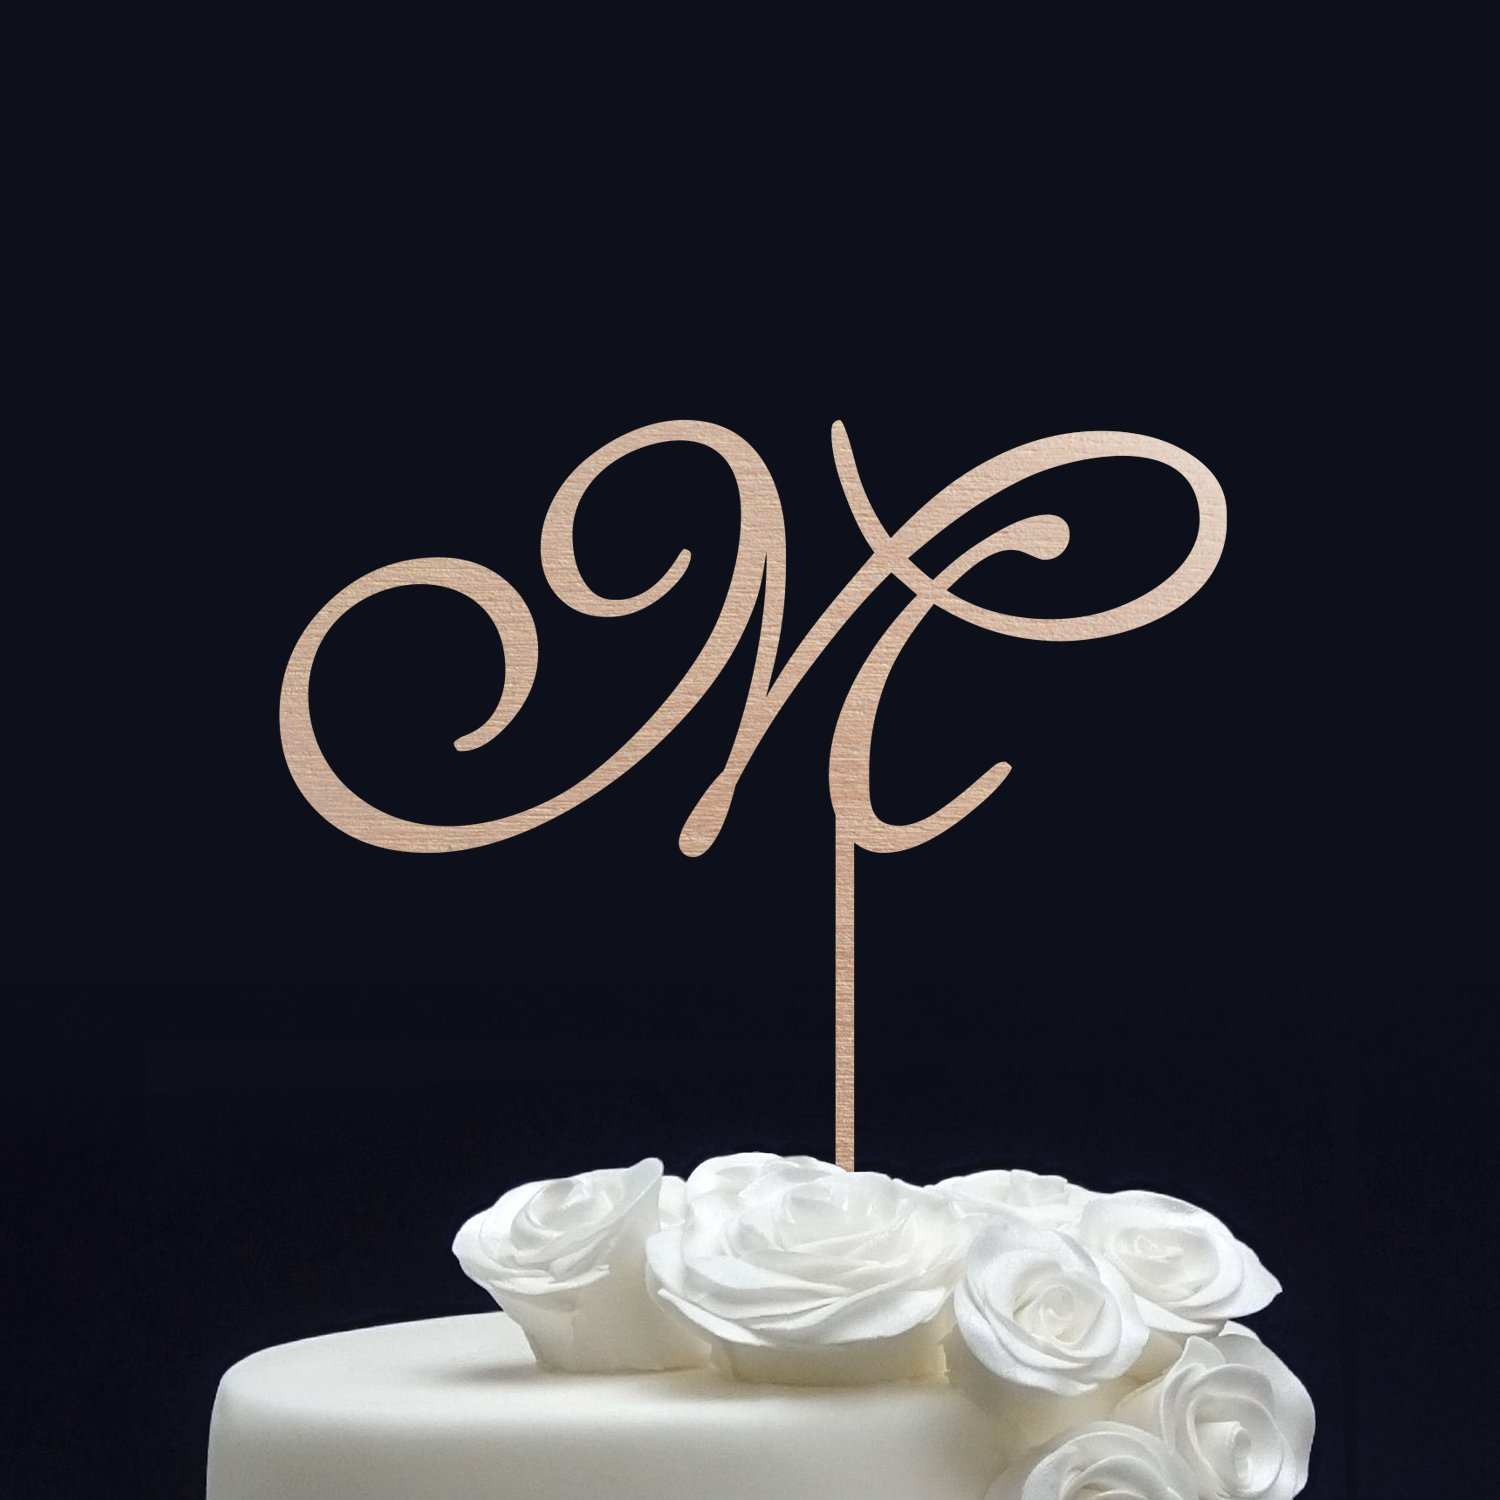 Personalized WEDDING CAKE TOPPER//Initial Cake Topper for Wedding - Monogram Cake Topper Gold - Letter Cake Topper - Custom Cake Topper